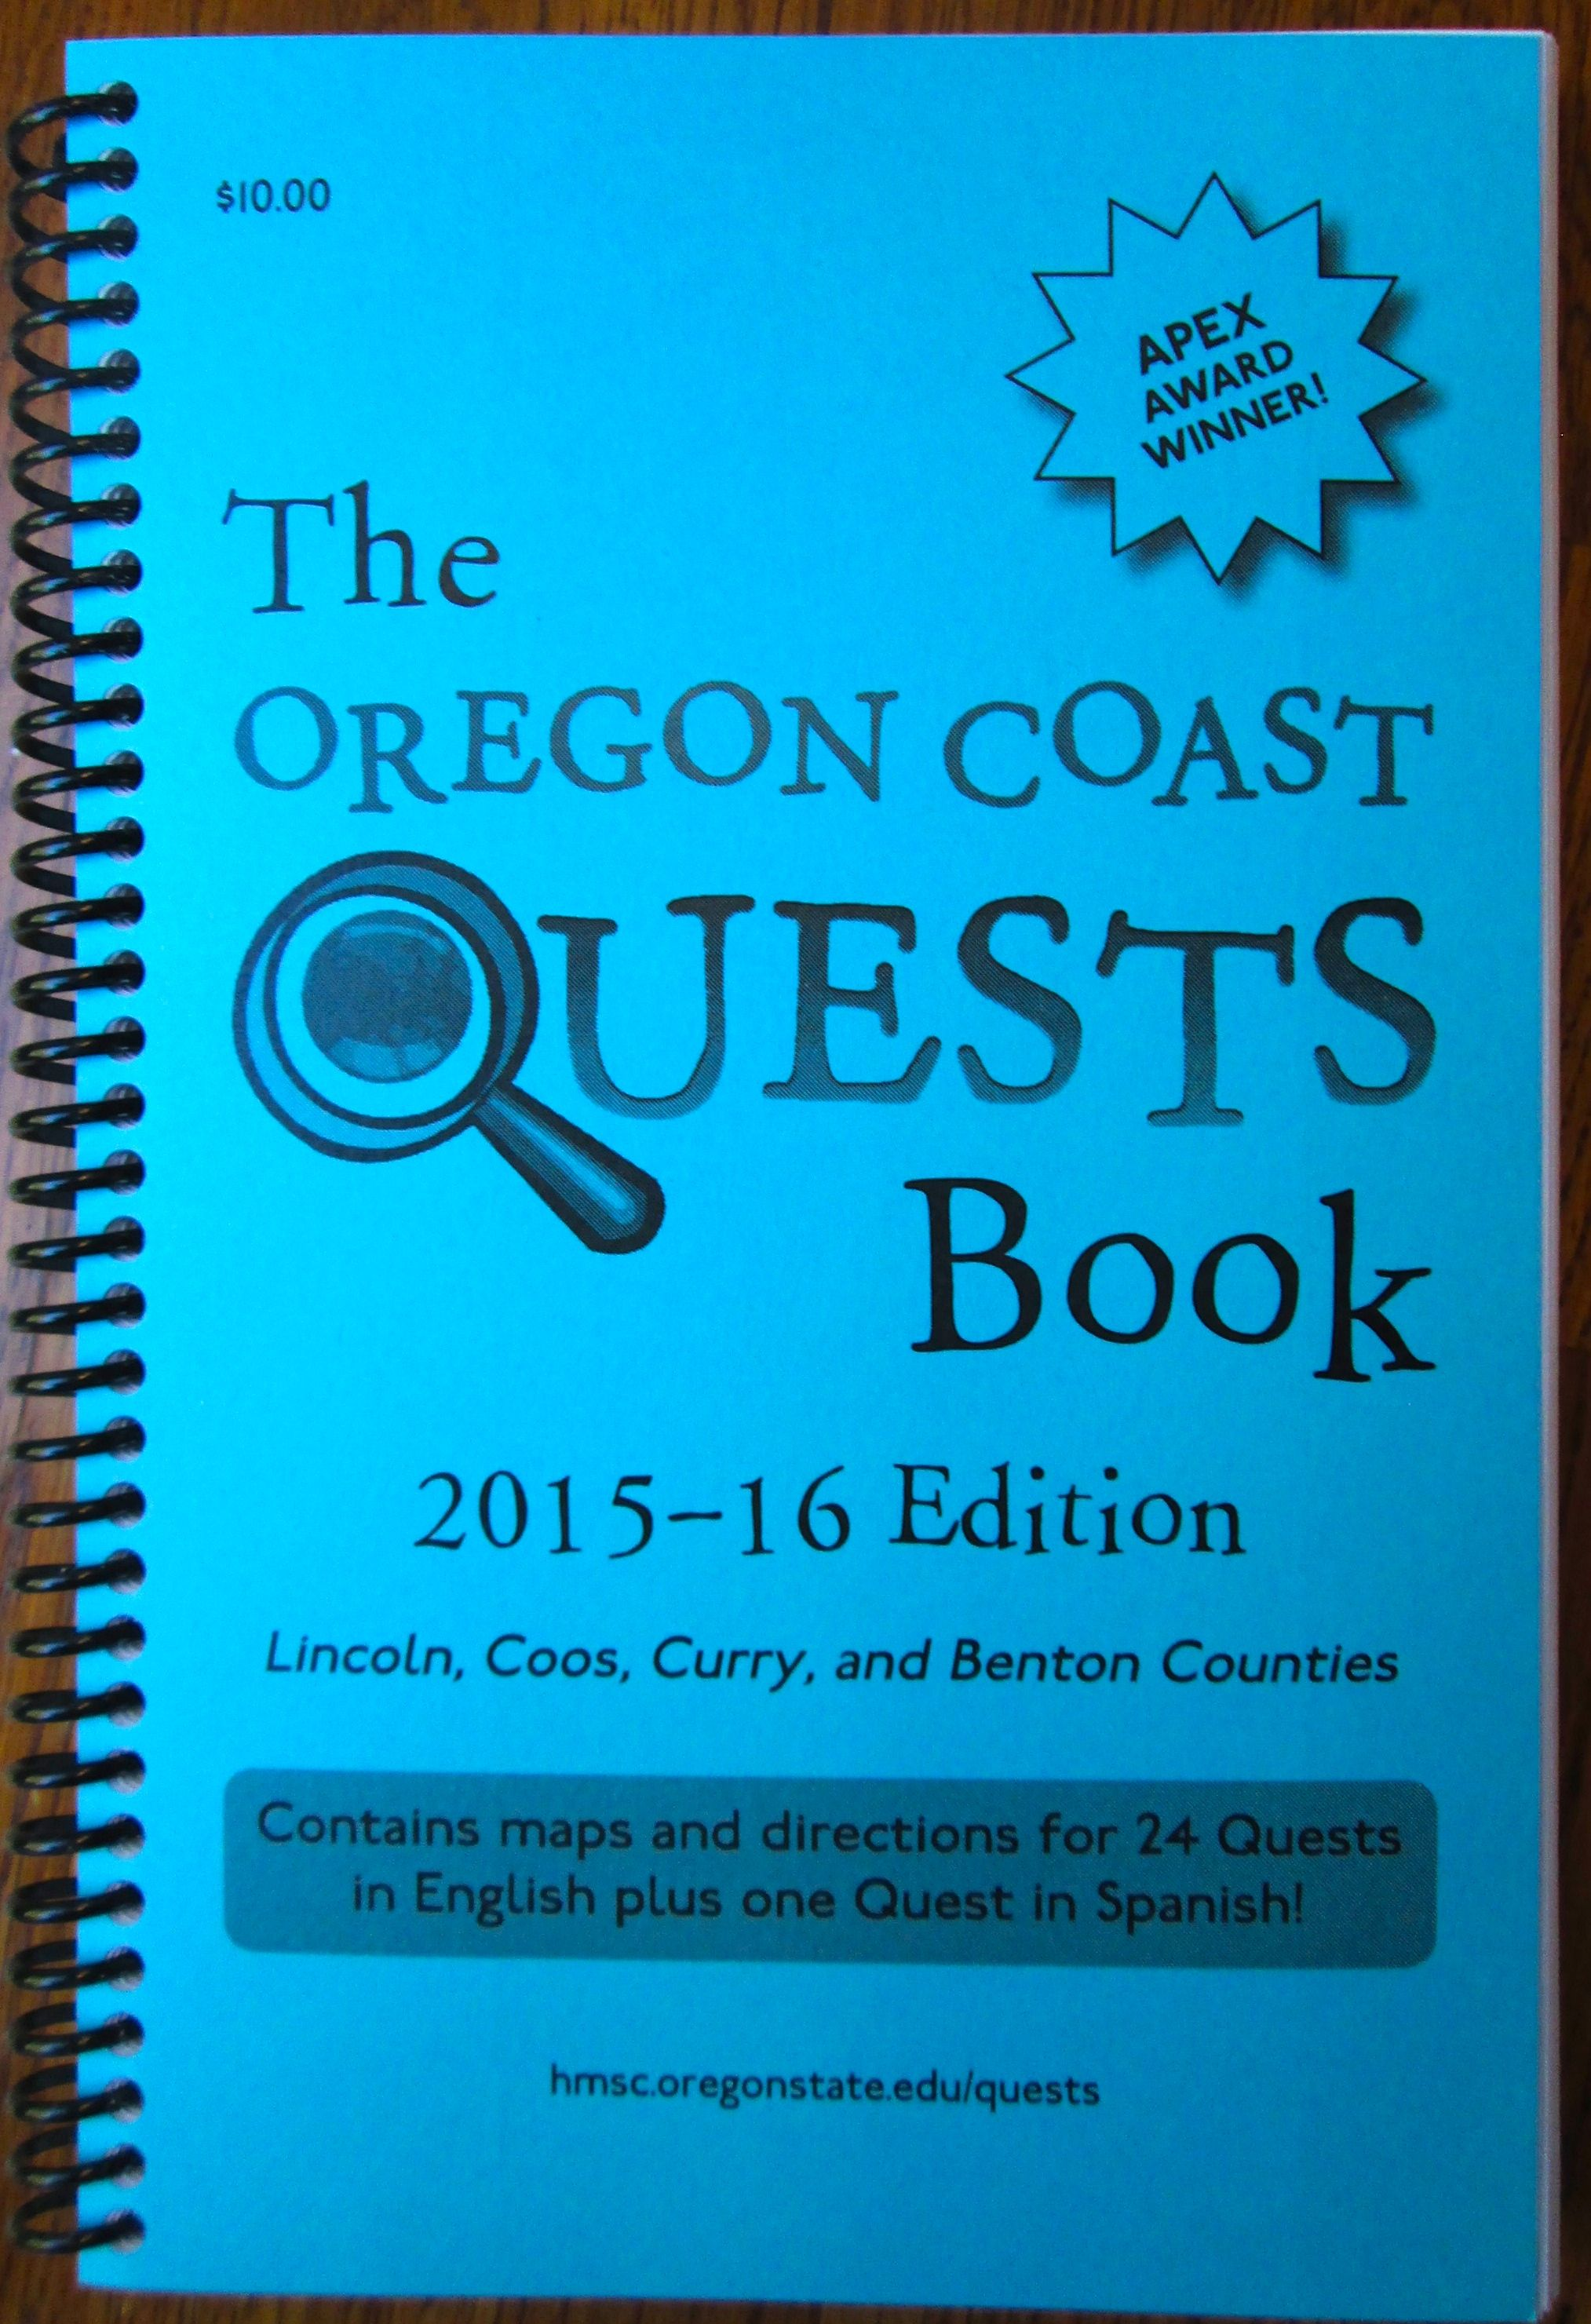 Oregon Coast Quests Book, 2015-16 Edition